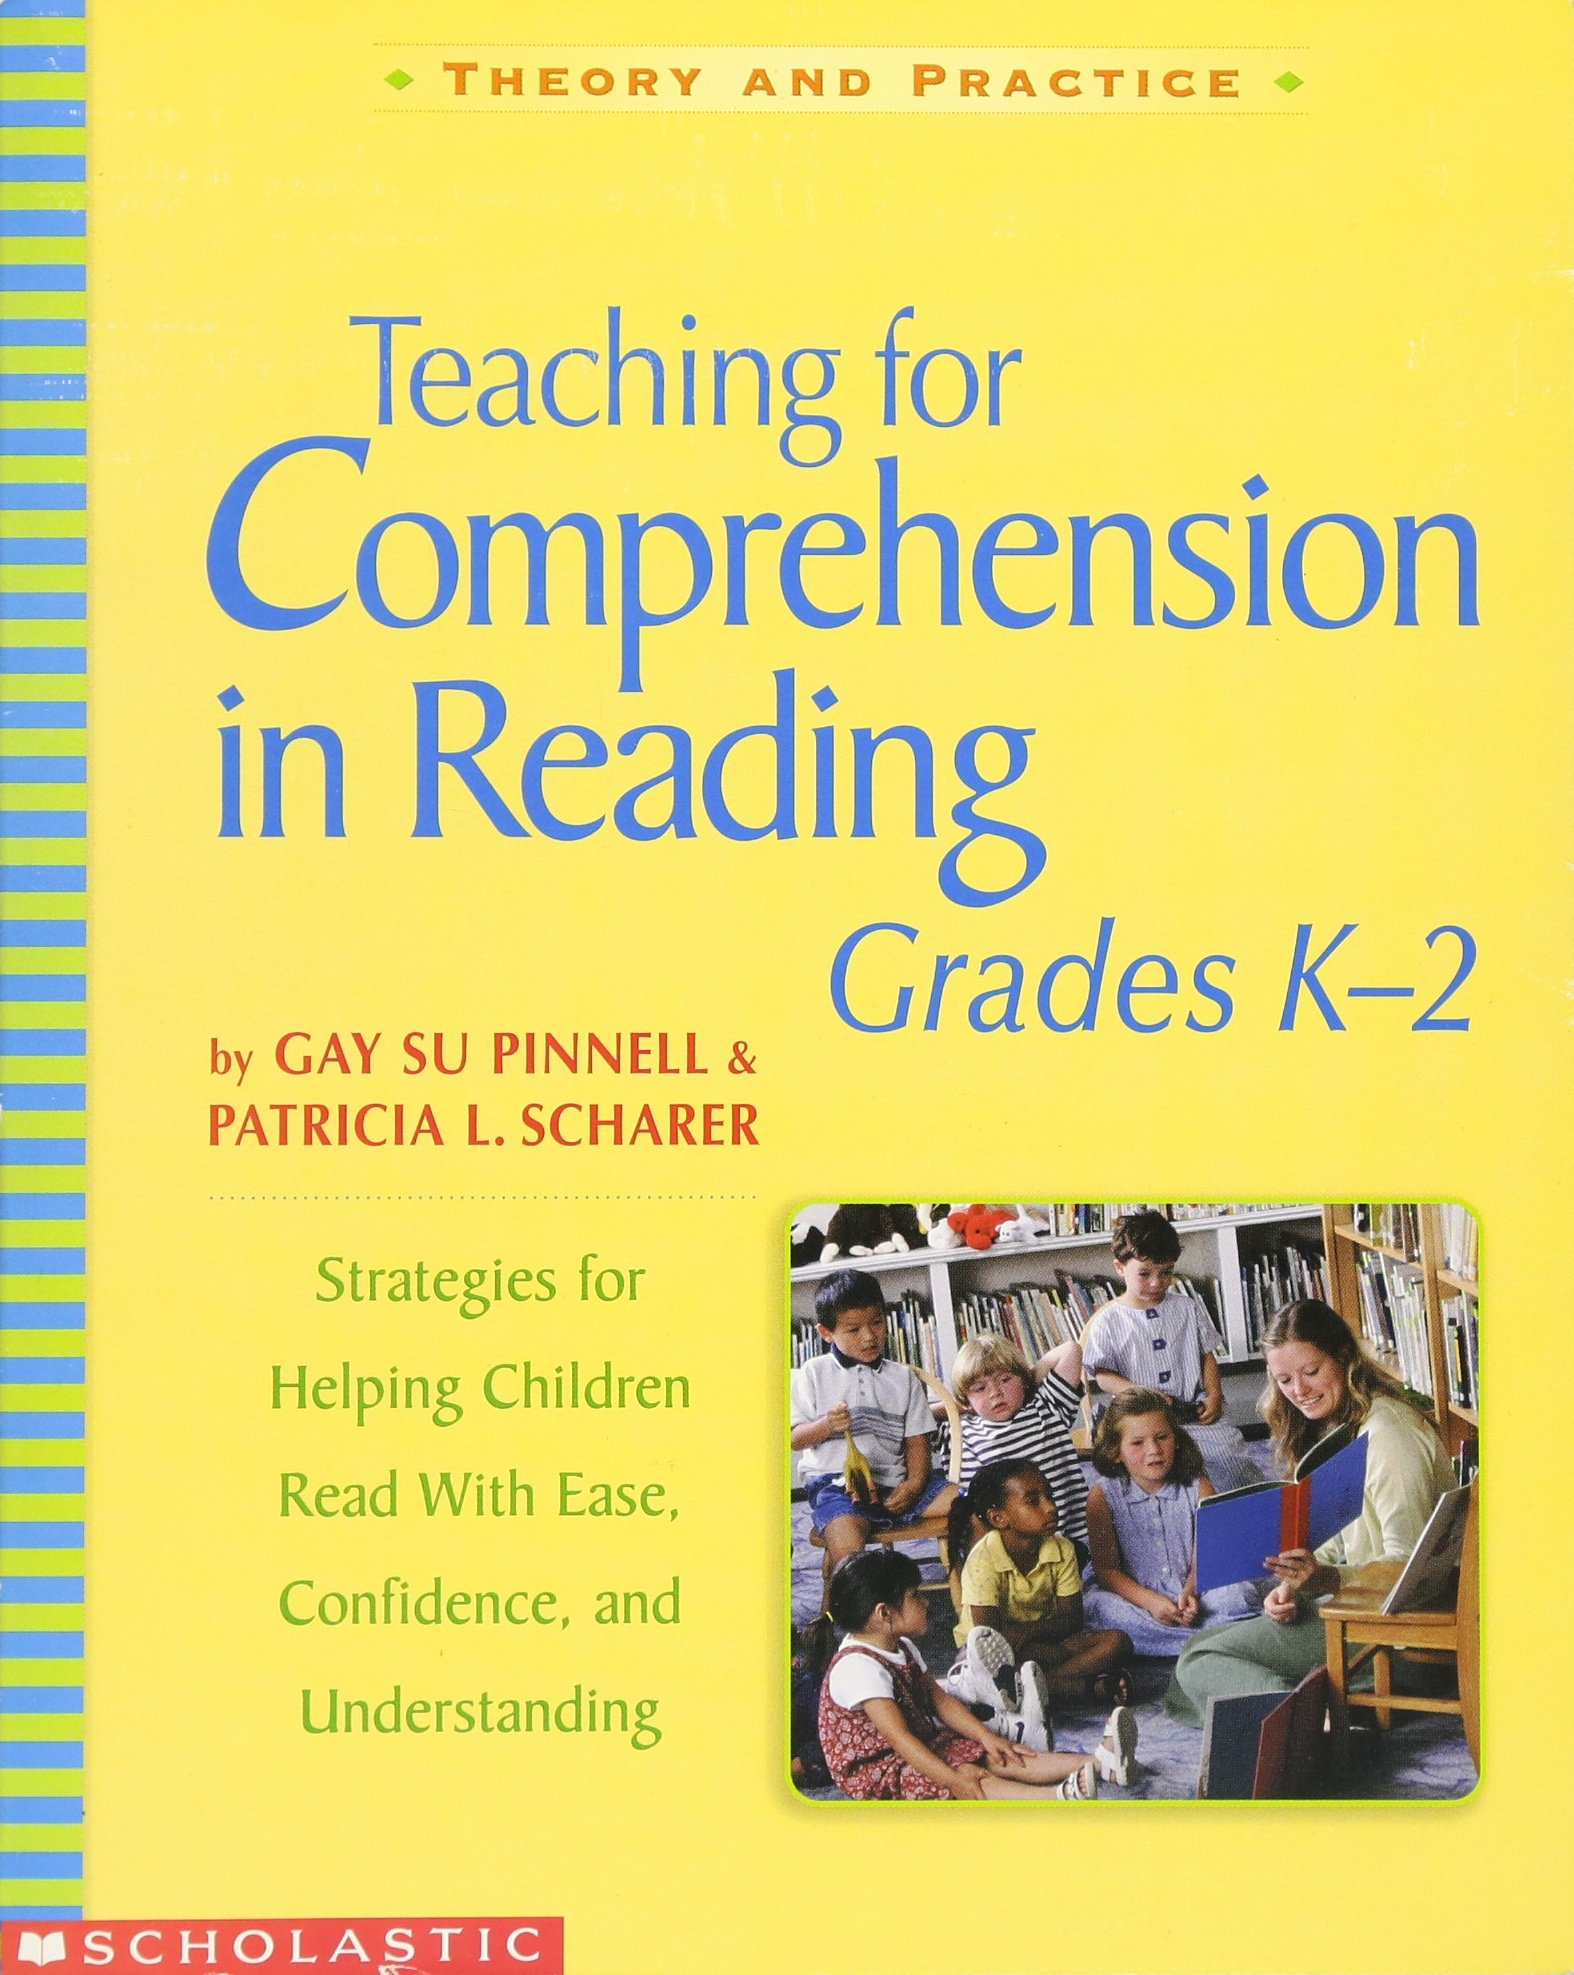 Scholastic 0439542588 Teaching For Comprehension In Reading Grades K 2 7 X 9 288 Pages Theory And Practice Paperback May 1 2003